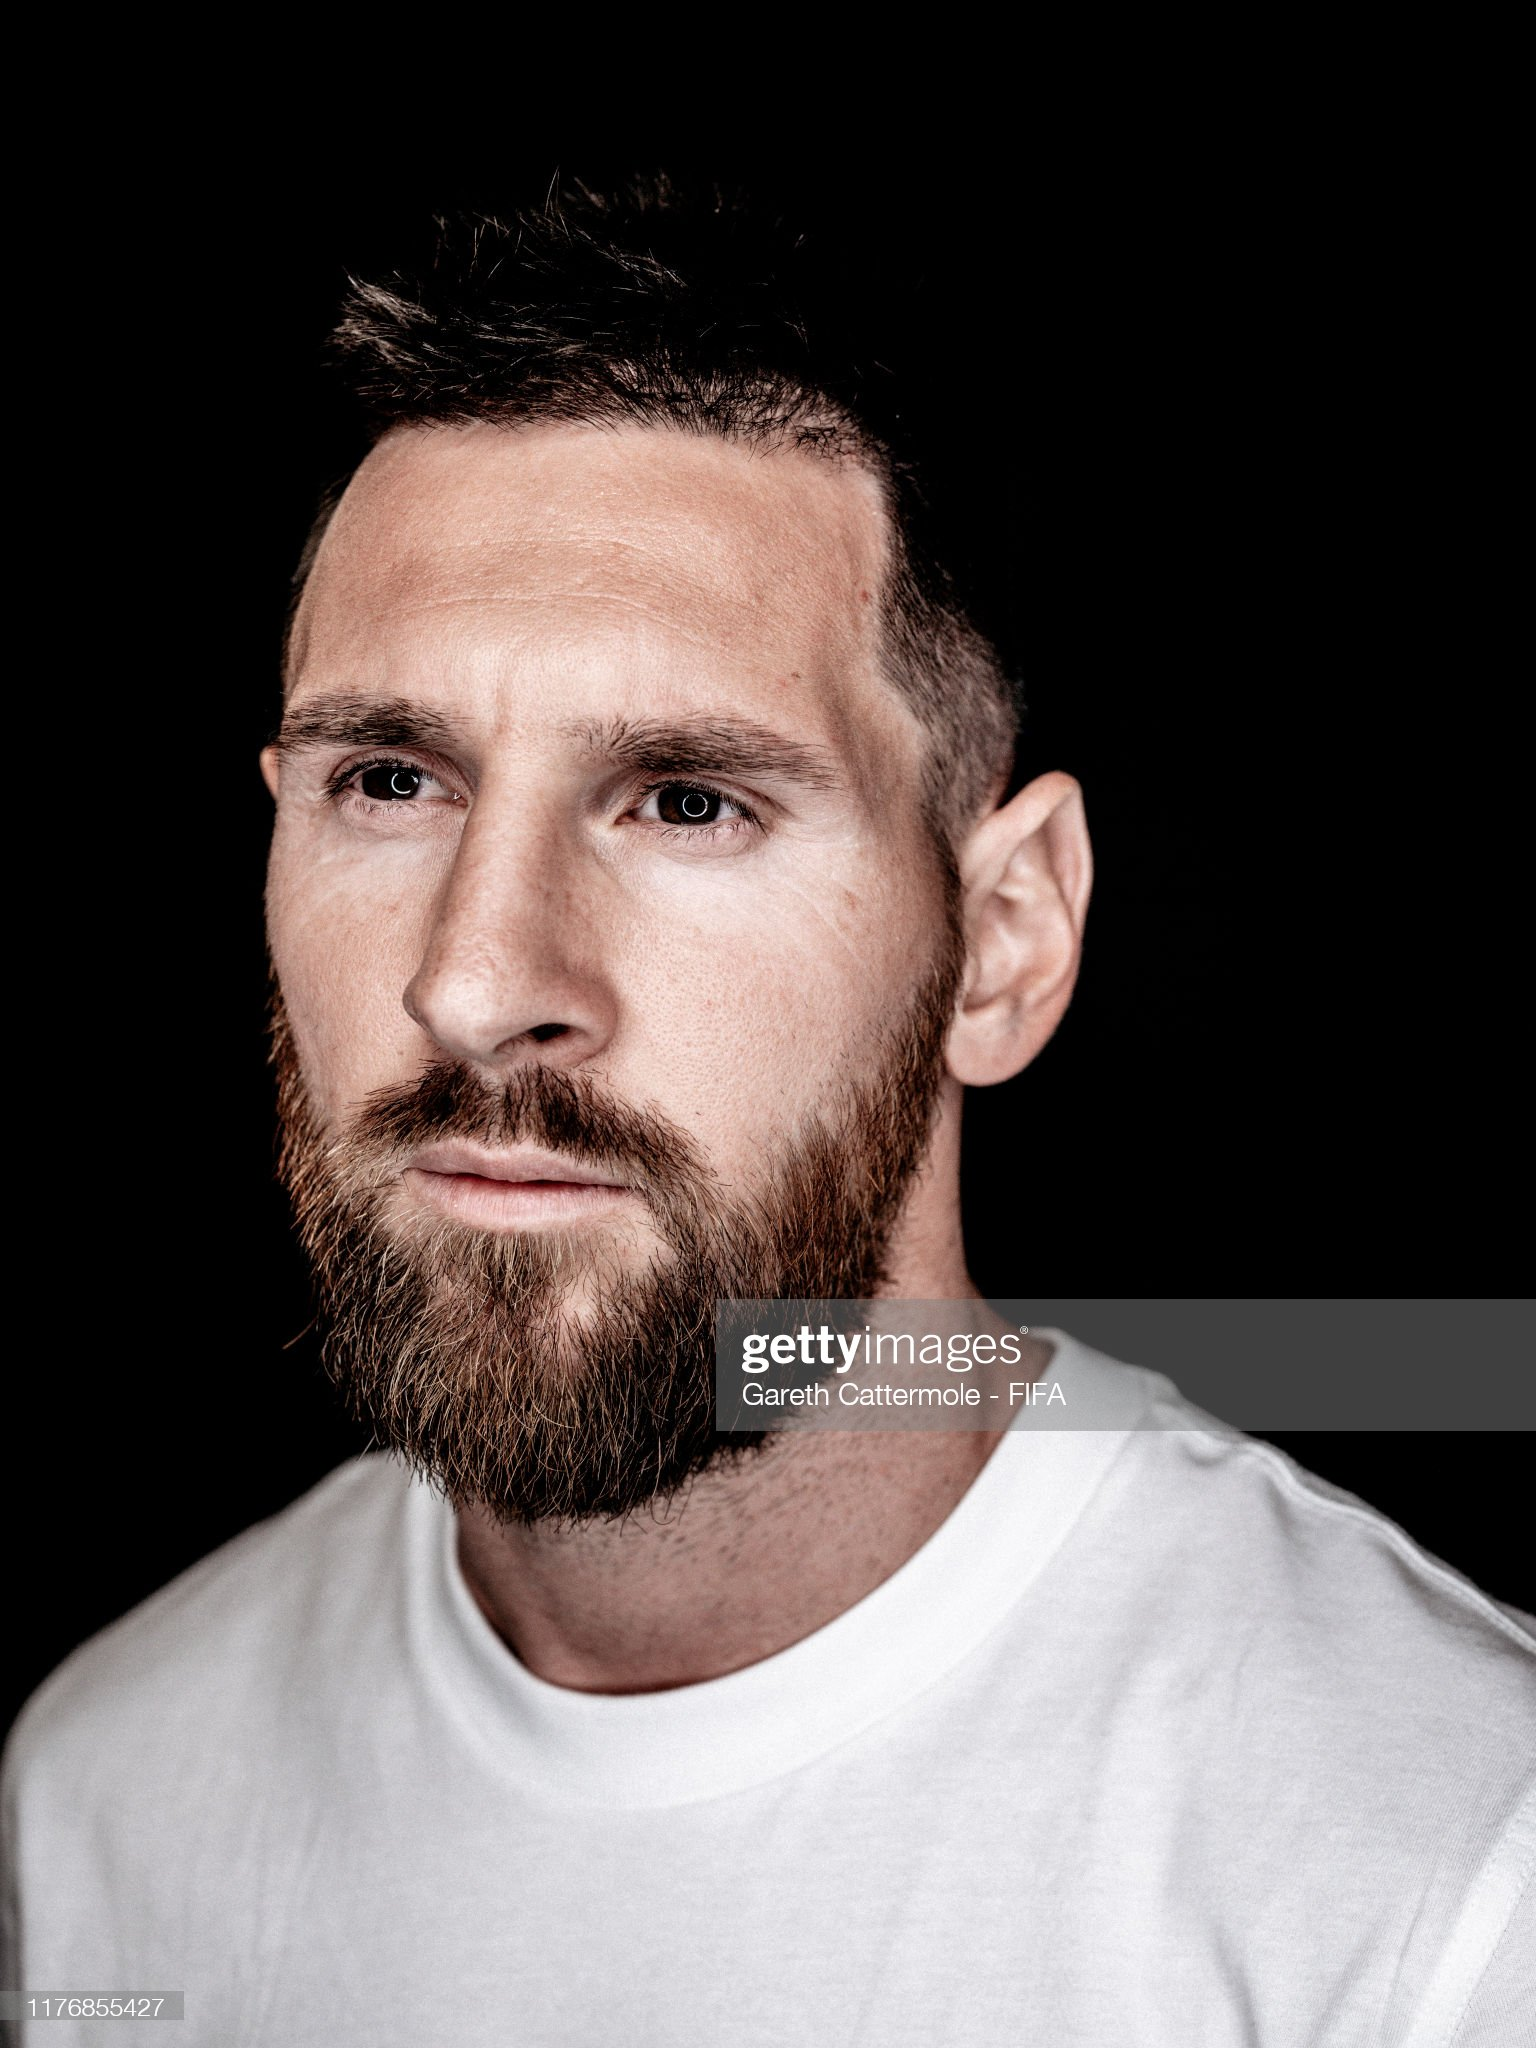 The Best FIFA Football Awards 2019 Lionel-messi-of-fc-barcelona-and-argentina-poses-for-a-portrait-ahead-picture-id1176855427?s=2048x2048